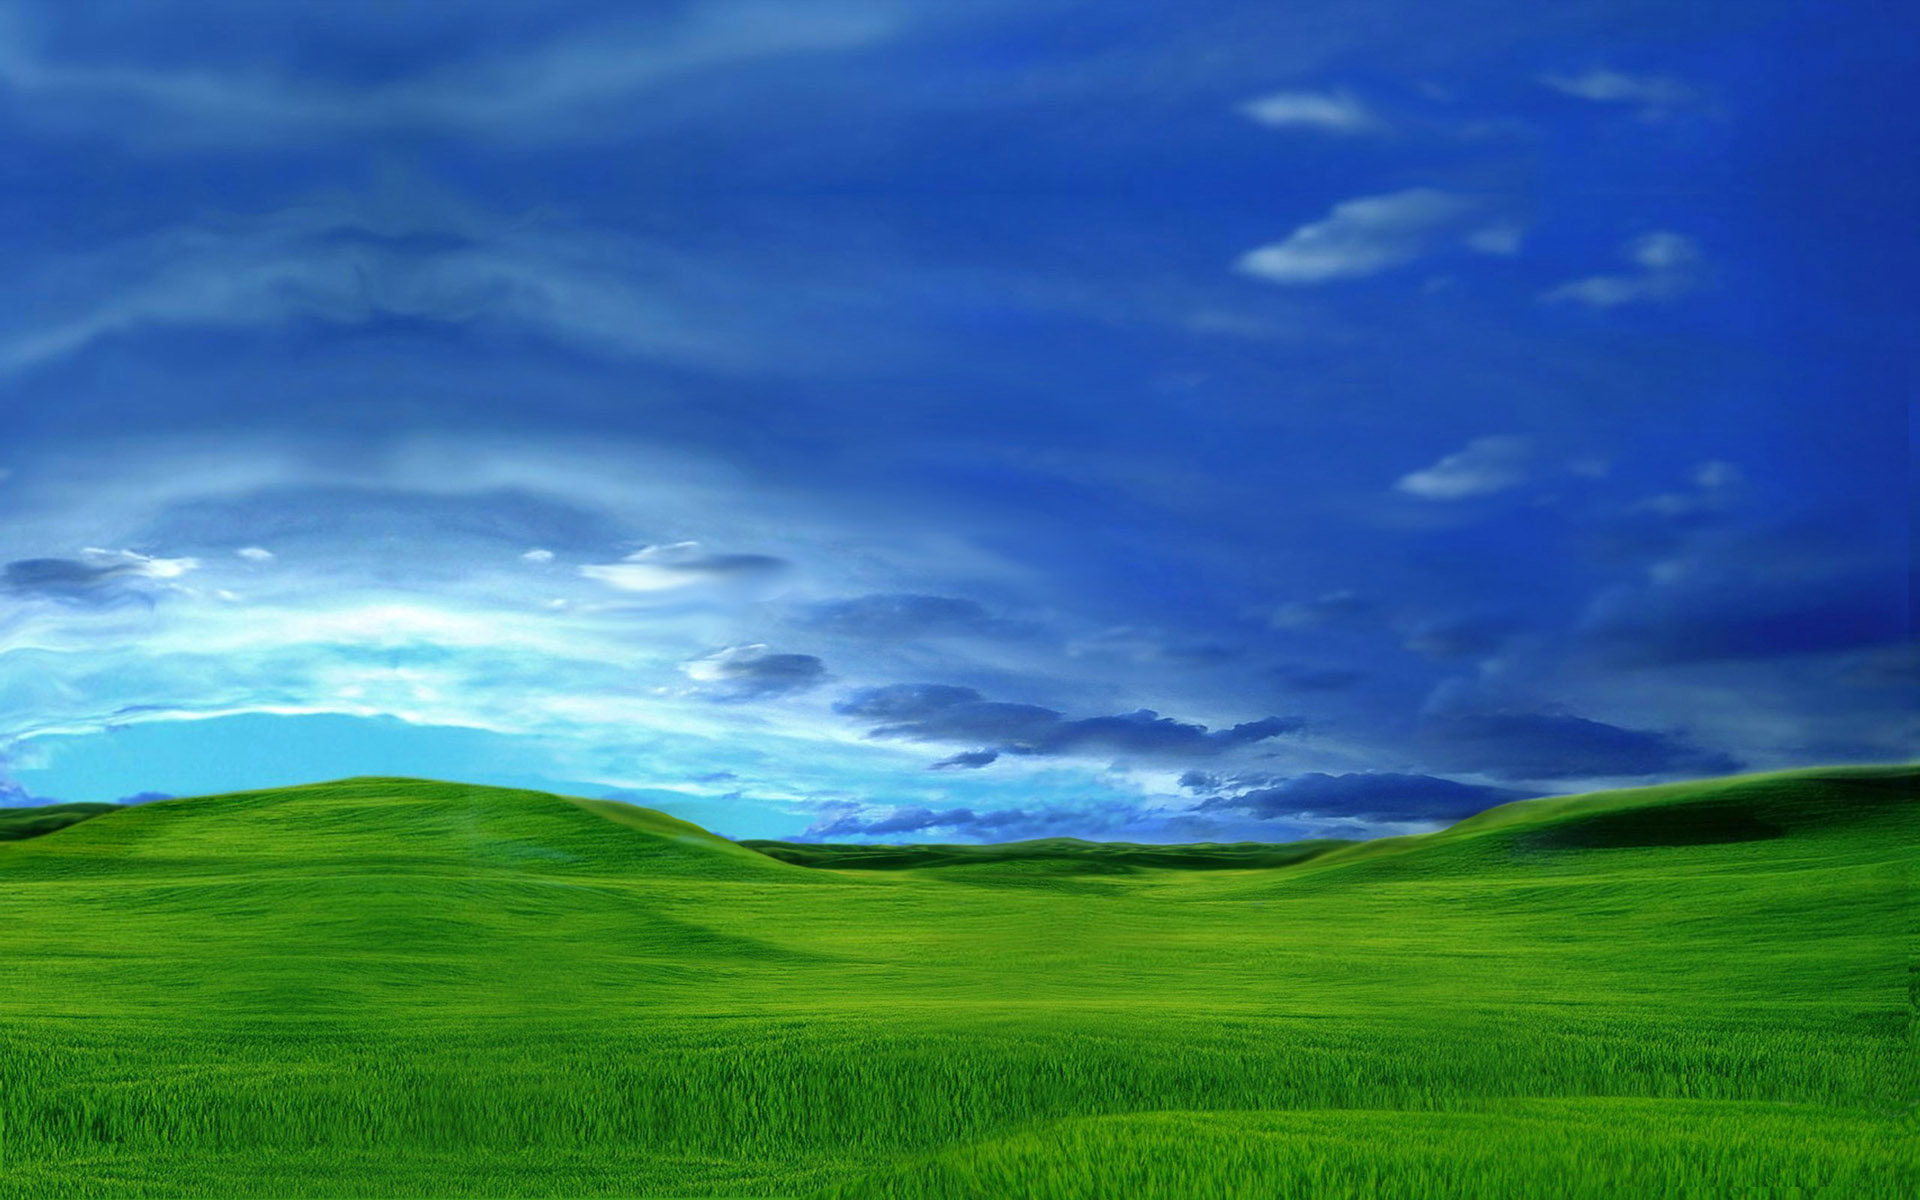 windows xp wallpapers group 1920x1200